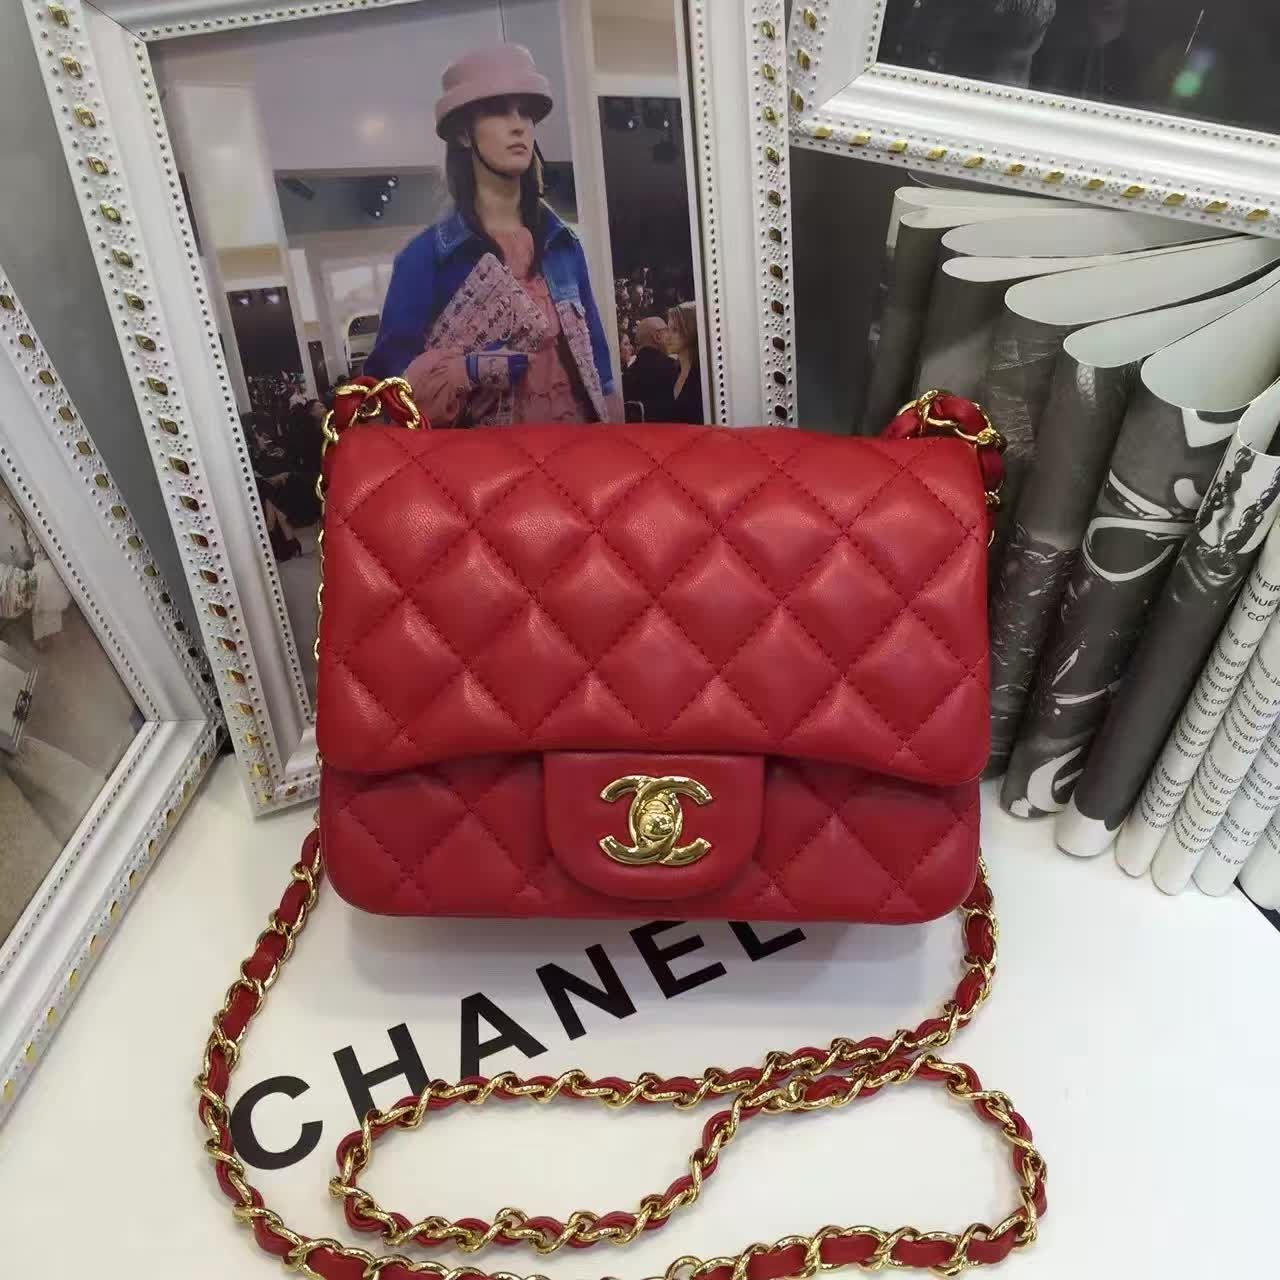 chanel Bag, ID : 65823(FORSALE:a@yybags.com), chanel bags sale store, chanel mens laptop briefcase, chanel handbag retailers, chanel large leather handbags, chanel backpacking packs, chanel from, chanel handbags for sale, chanel discount briefcases, chanel hobo handbags, chanel jessica simpson handbags, chanel duffel bag #chanelBag #chanel #official #chanel